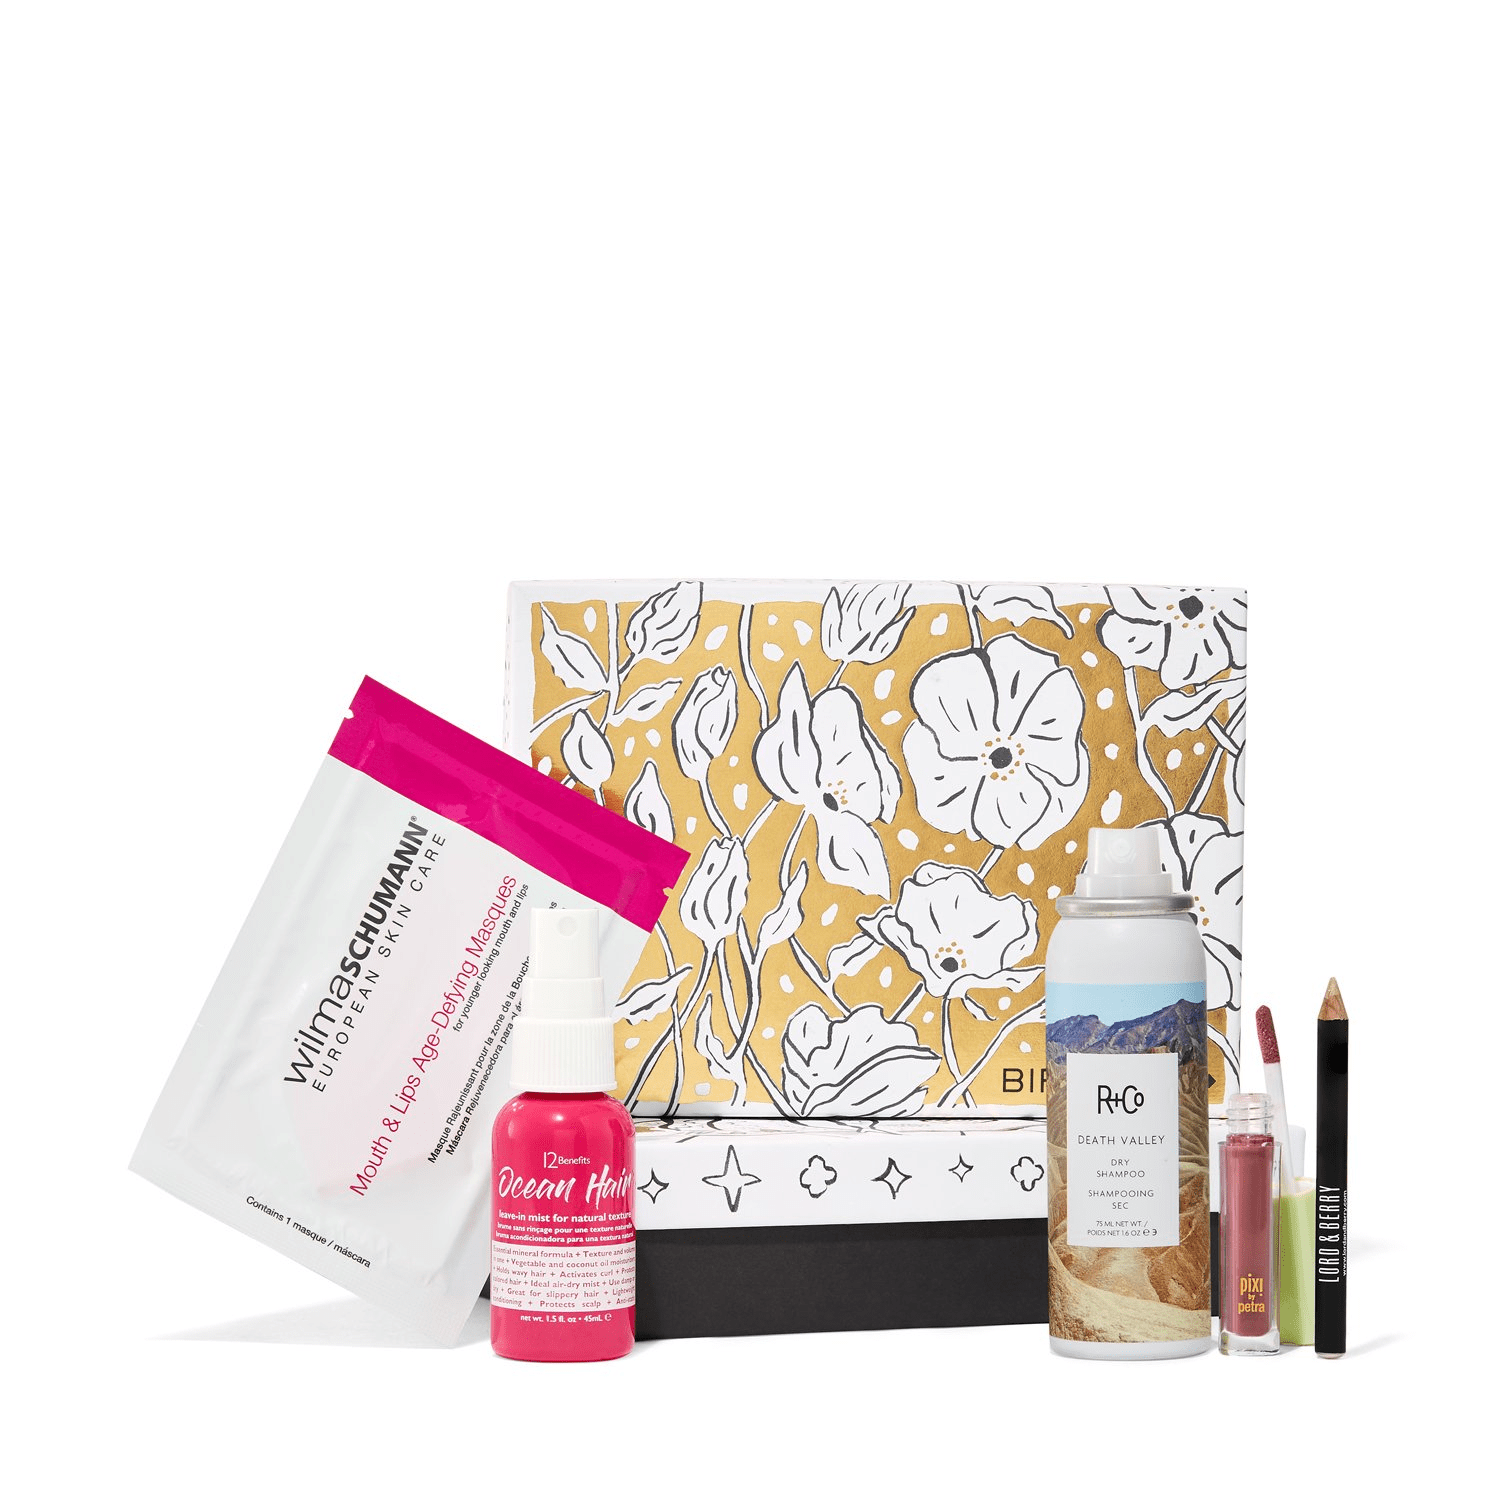 Birchbox September 2017 Your Time to Shine Curated Box Available Now in the Shop!